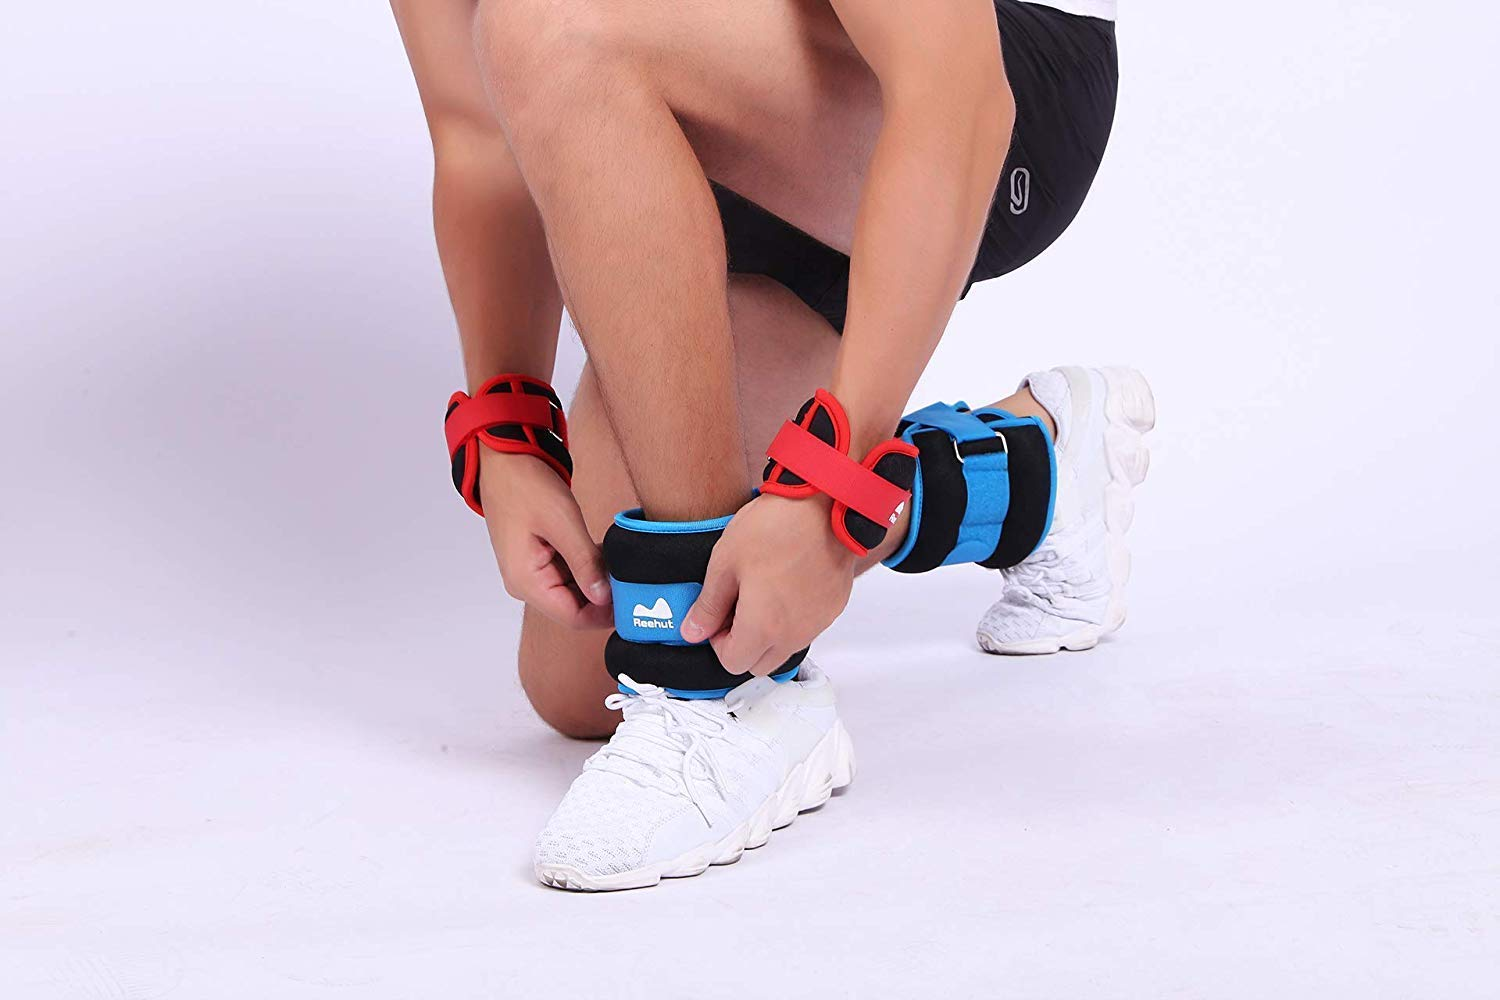 Model wearing the strap-on ankle weights